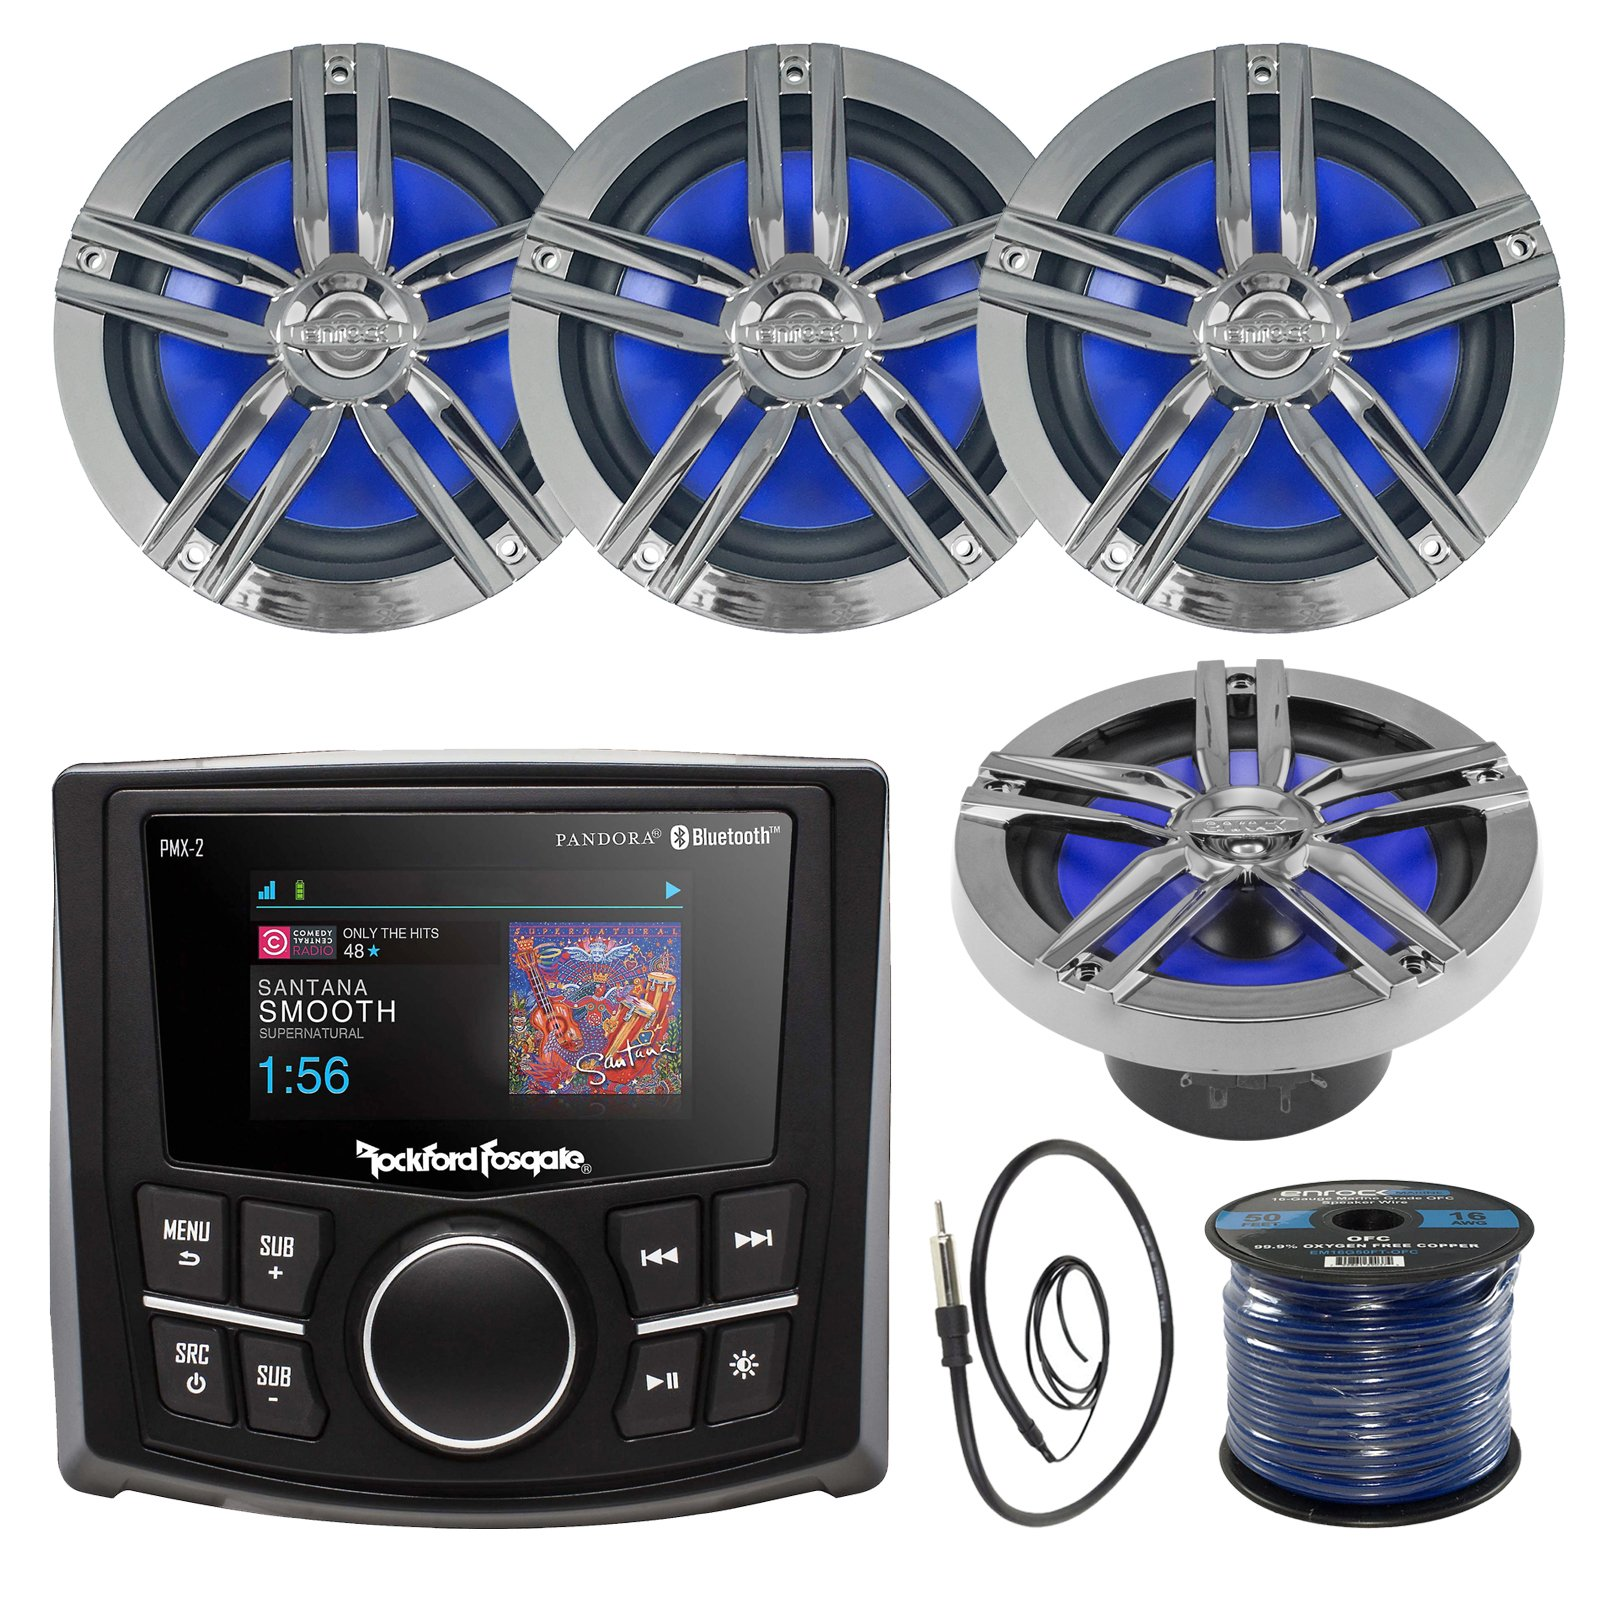 Rockford Fosgate PMX-2 Ultra Compact Bluetooth Marine Boat MP3 Digital Media Receiver Bundle Combo With 4x Enrock Black/Chrome 6.5'' Inch Audio Speaker + 22'' Radio Antenna + 50 Ft Speaker Wire by EnrcokMarineBundle